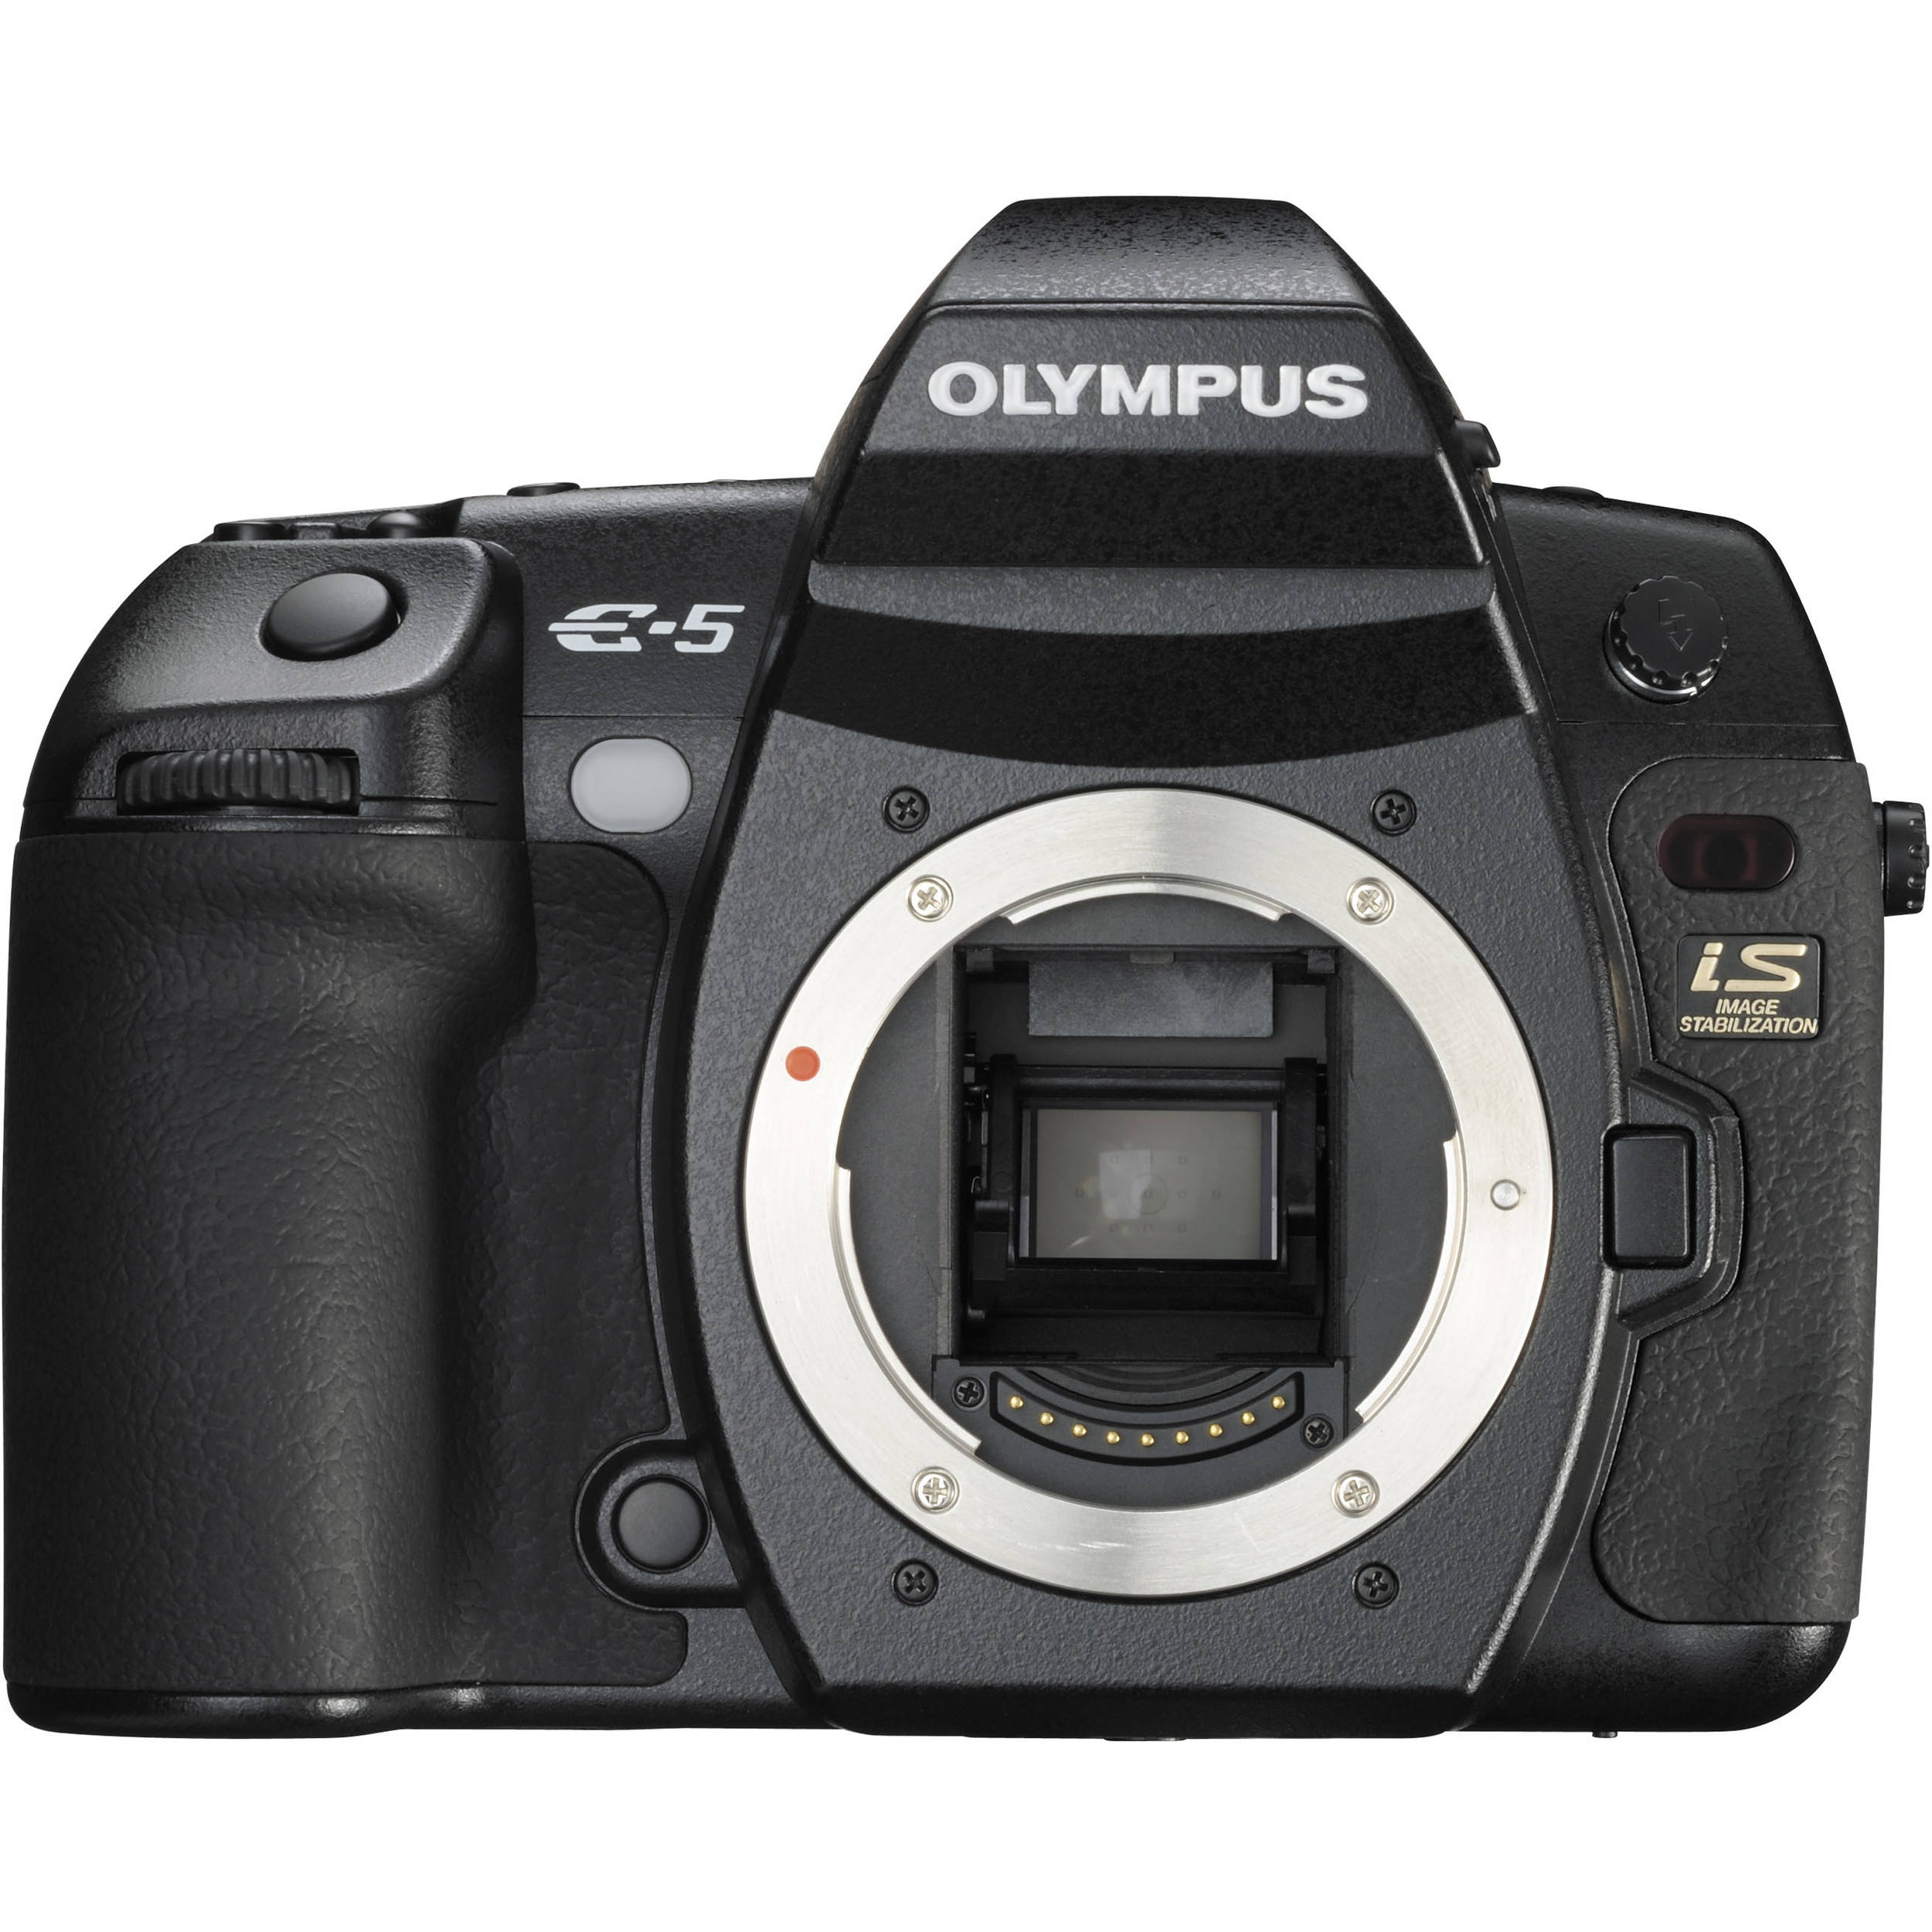 Camera Semi Dslr Cameras olympus e 5 dslr camera body only 262865 bh photo video only